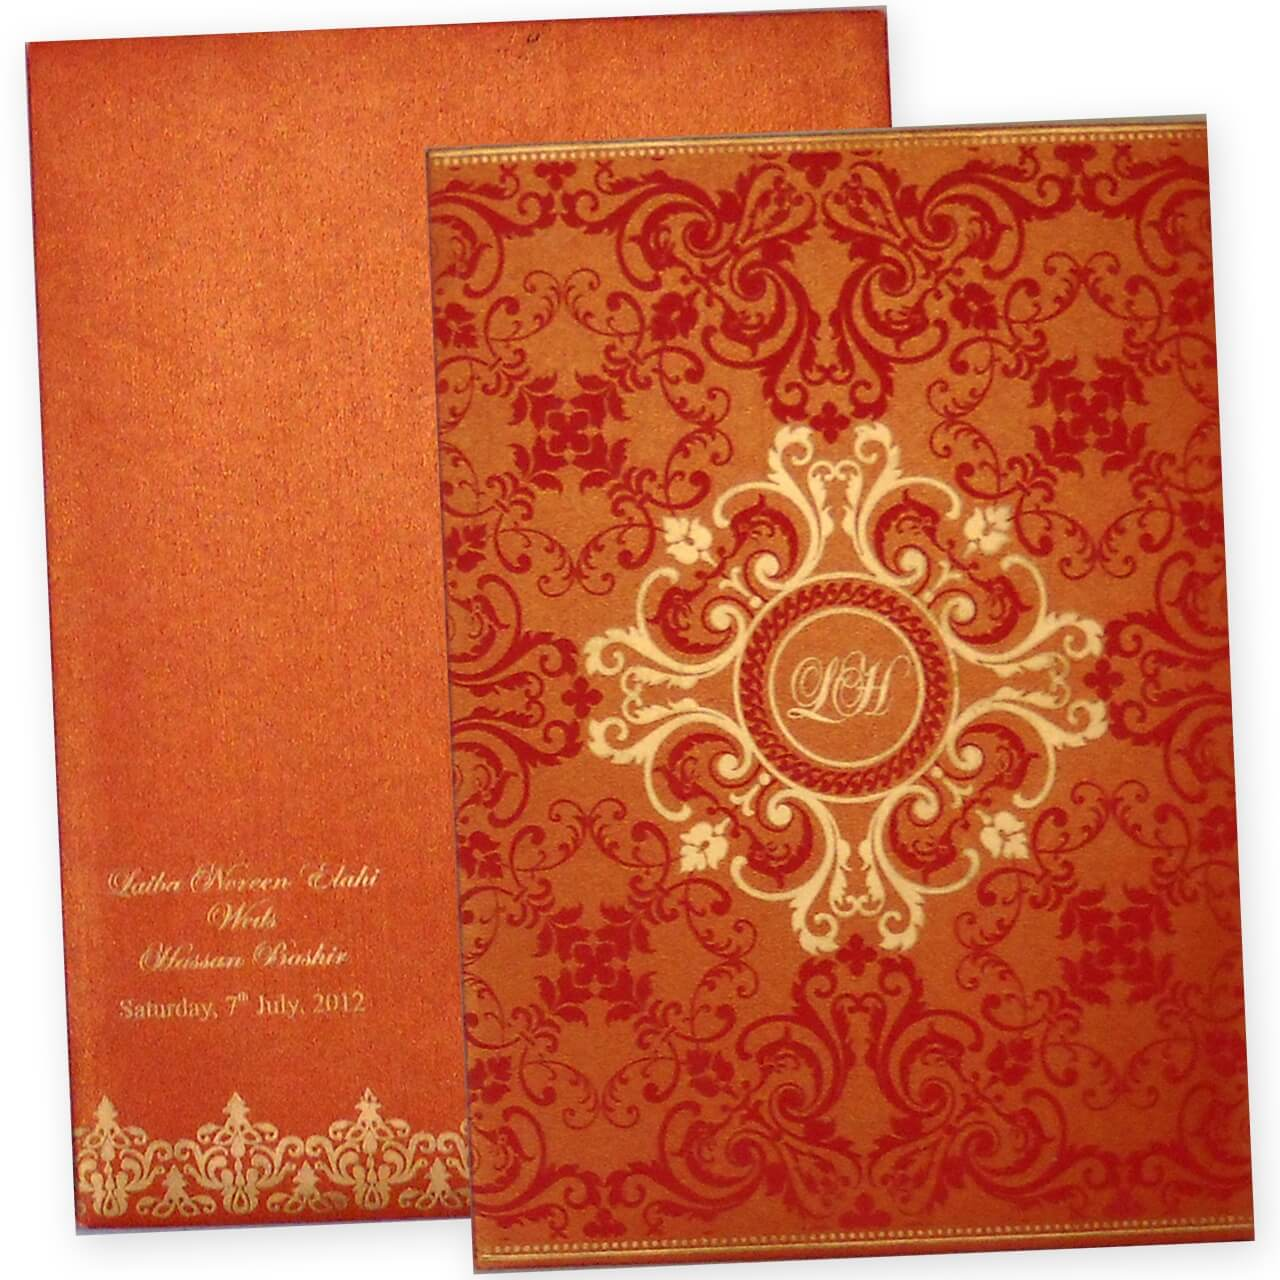 Best Indian Wedding Card Designs Photos - Styles & Ideas 2018 - sperr.us